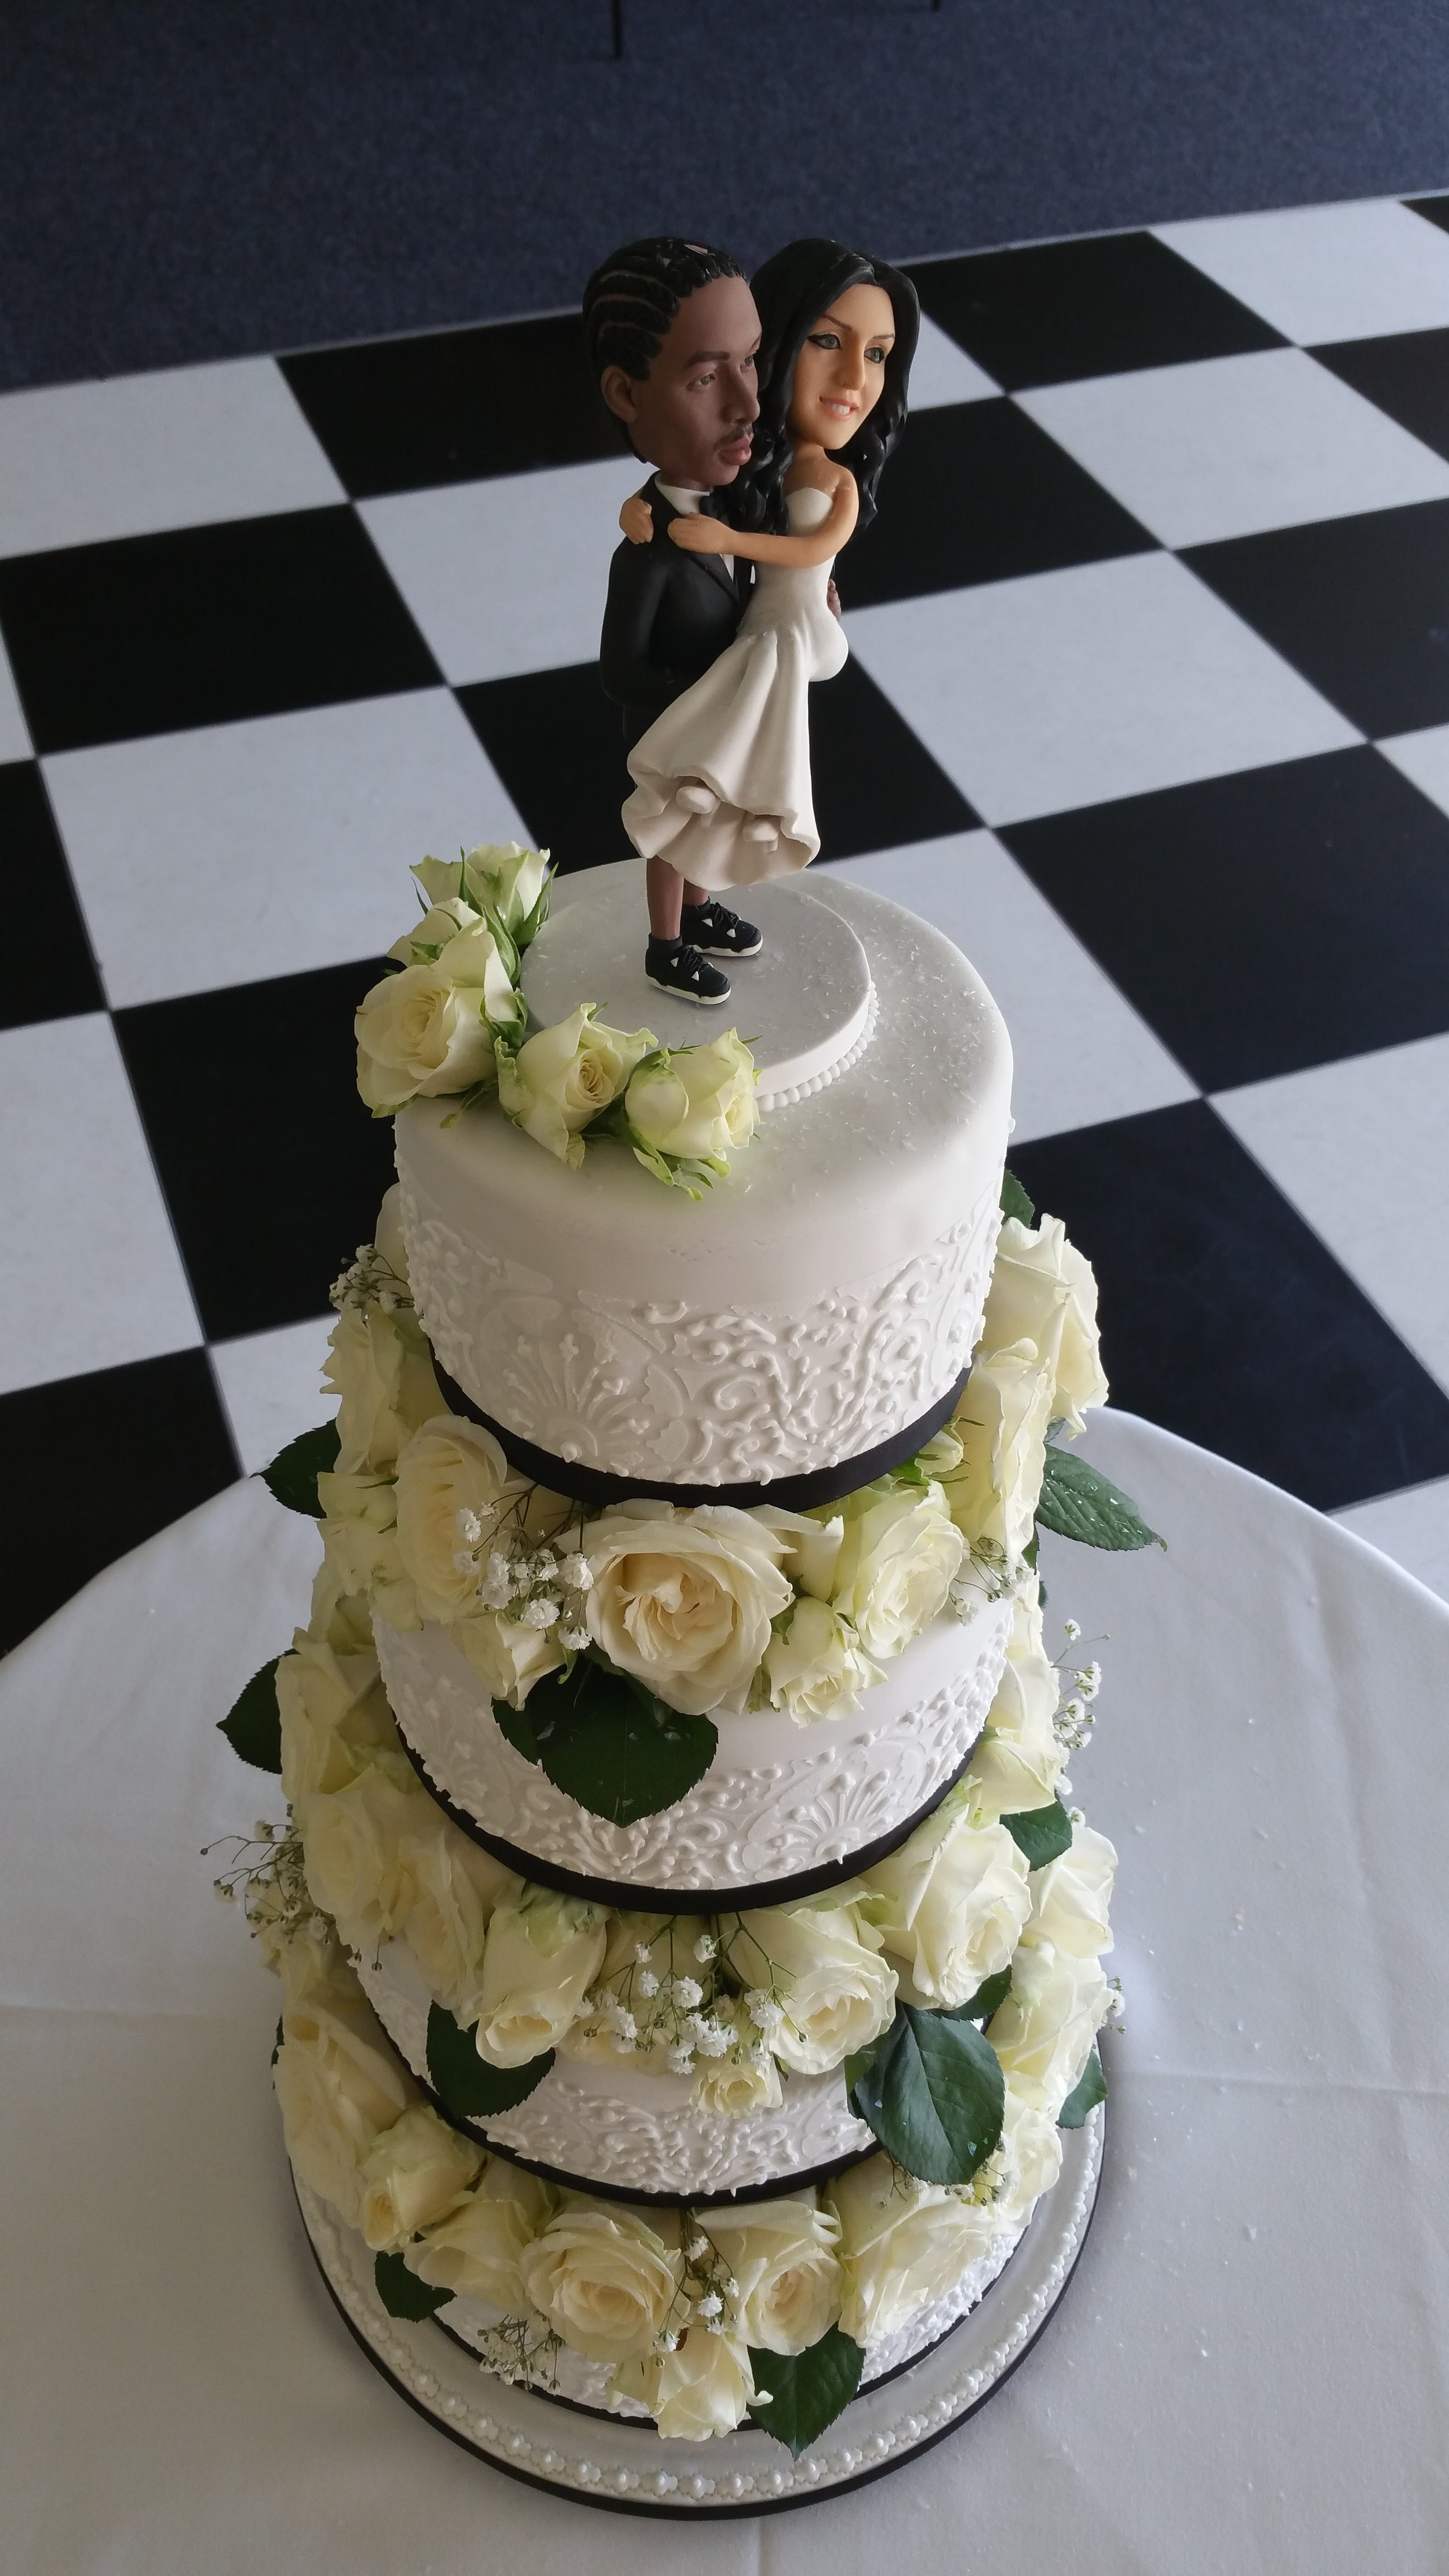 Fun and stylish - Stunning 4 tier cake with overpiped stencils, decorated with fresh flowers and bride's own cake topper.